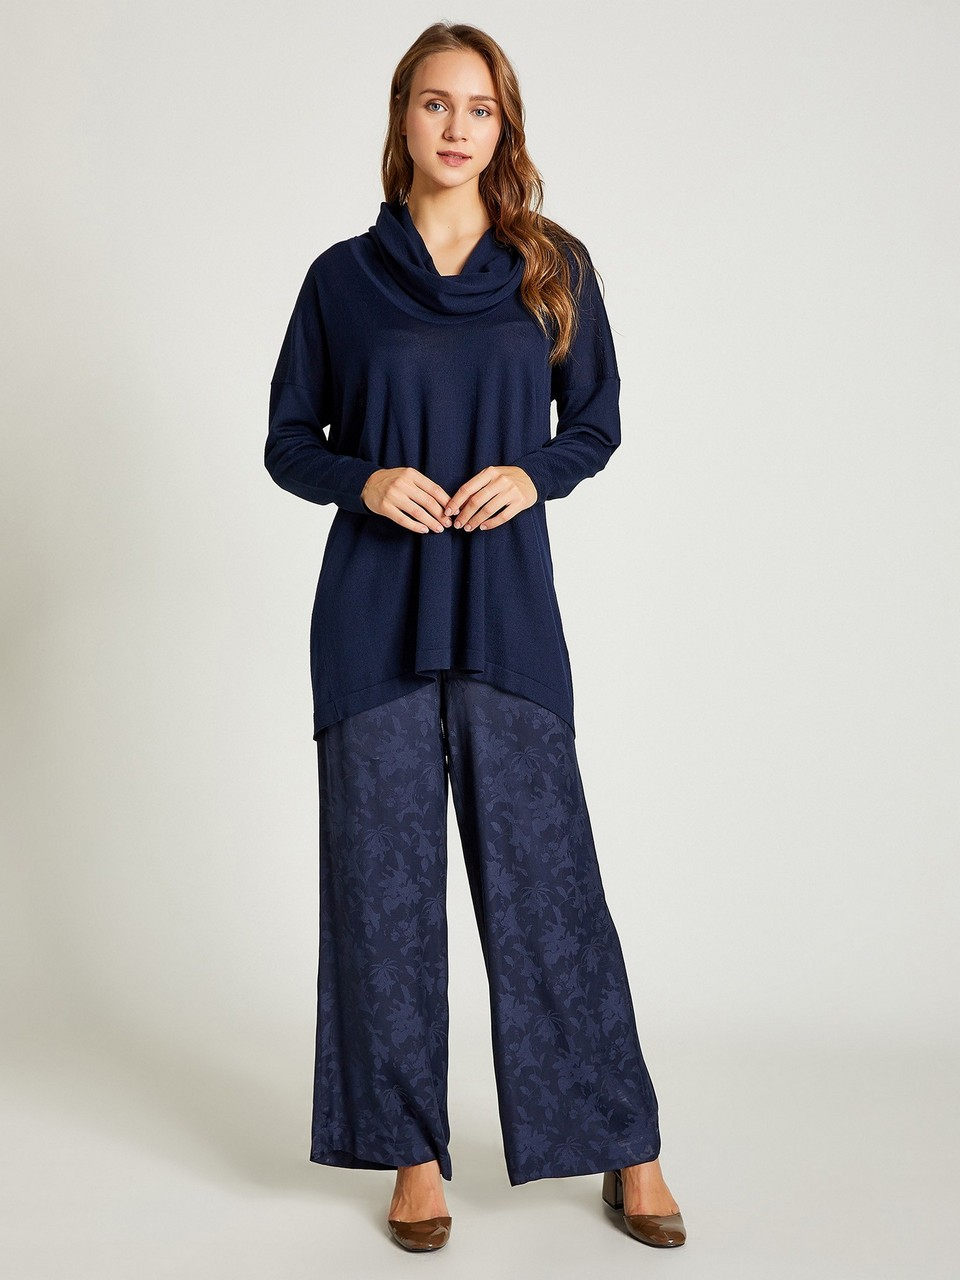 Jacquared Loose Cut Trousers with Gathered Waist